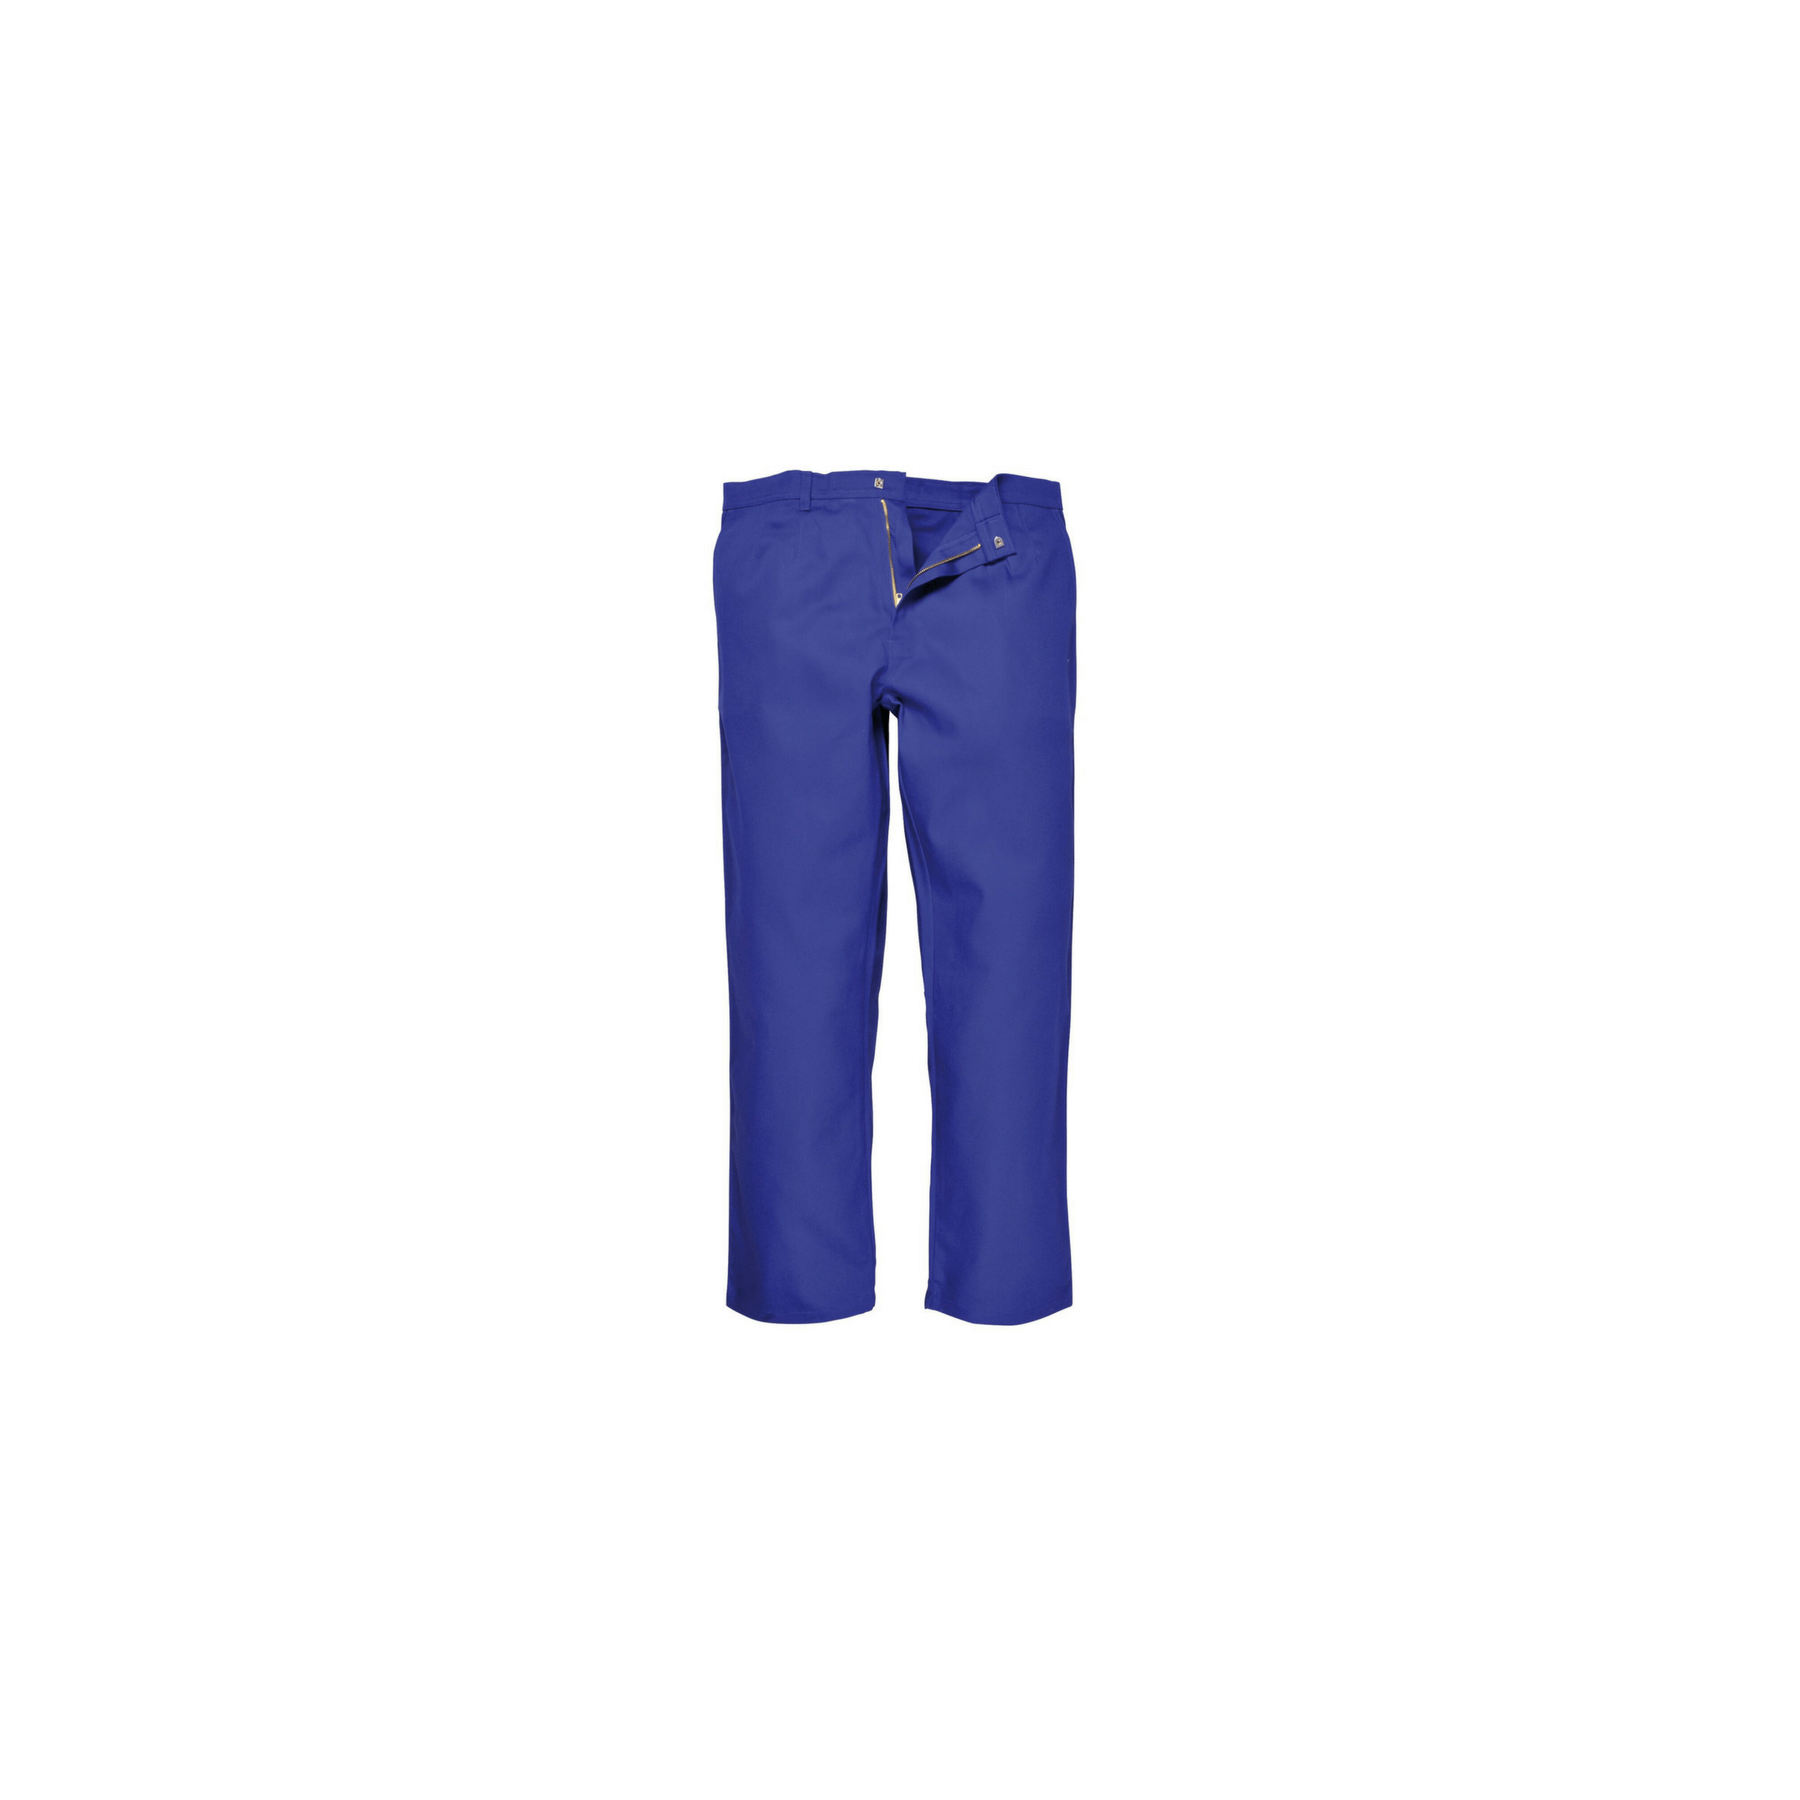 Pantalon de travail Bizweld Portwest - bleu royal